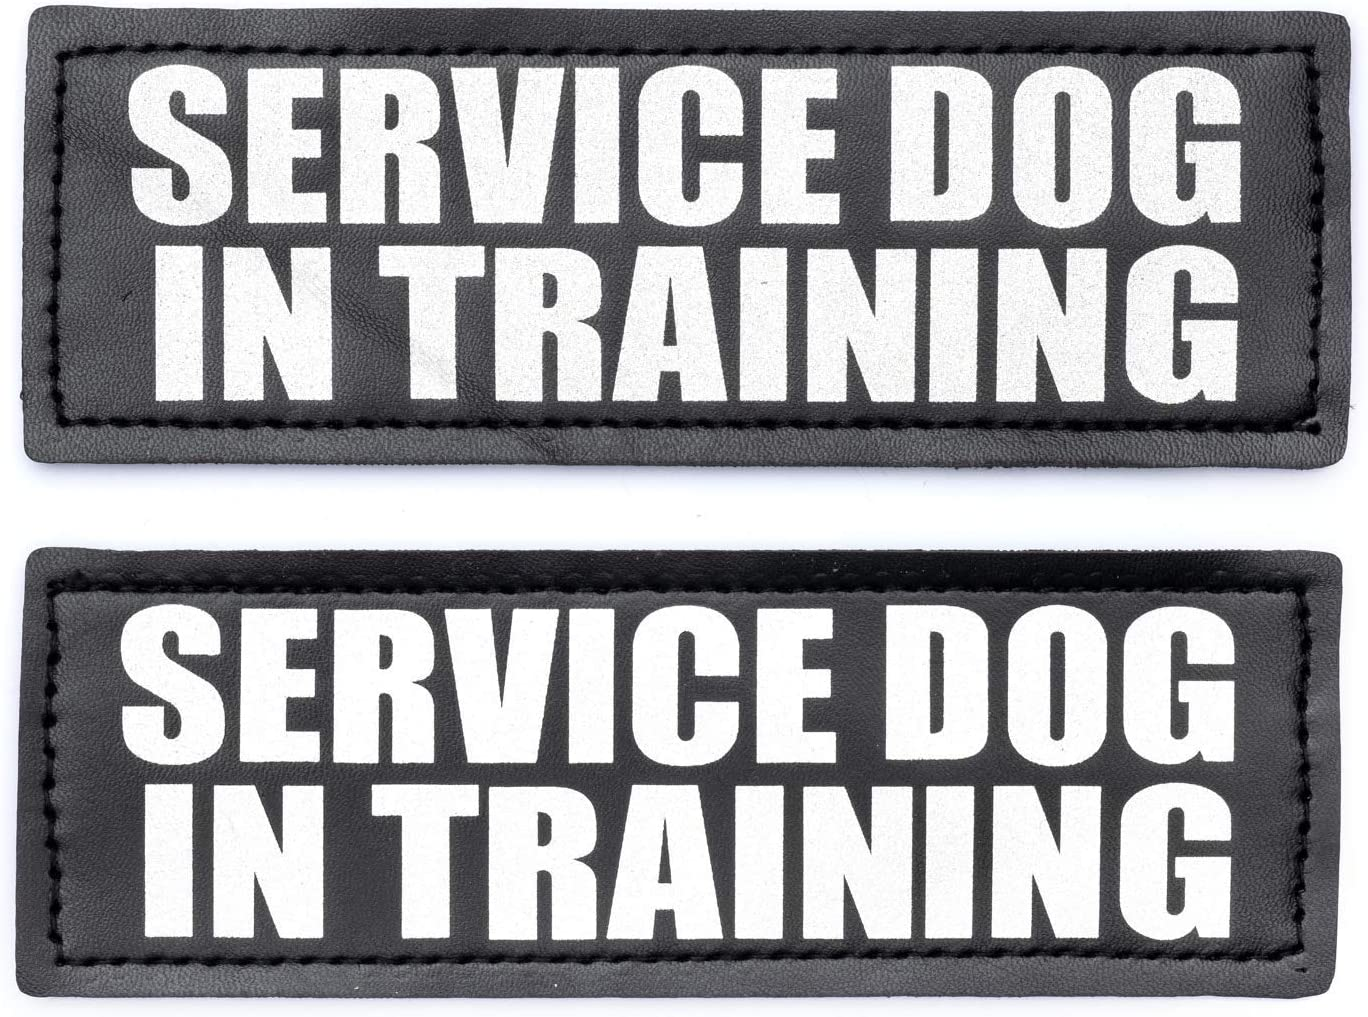 DO NOT PET, 6x2 inch JUJUPUPS Black Reflective Dog Patches 2 Pack Service Dog ,In Training, DO NOT PET Tags with Hook and Loop Patches for Vests and Harnesses